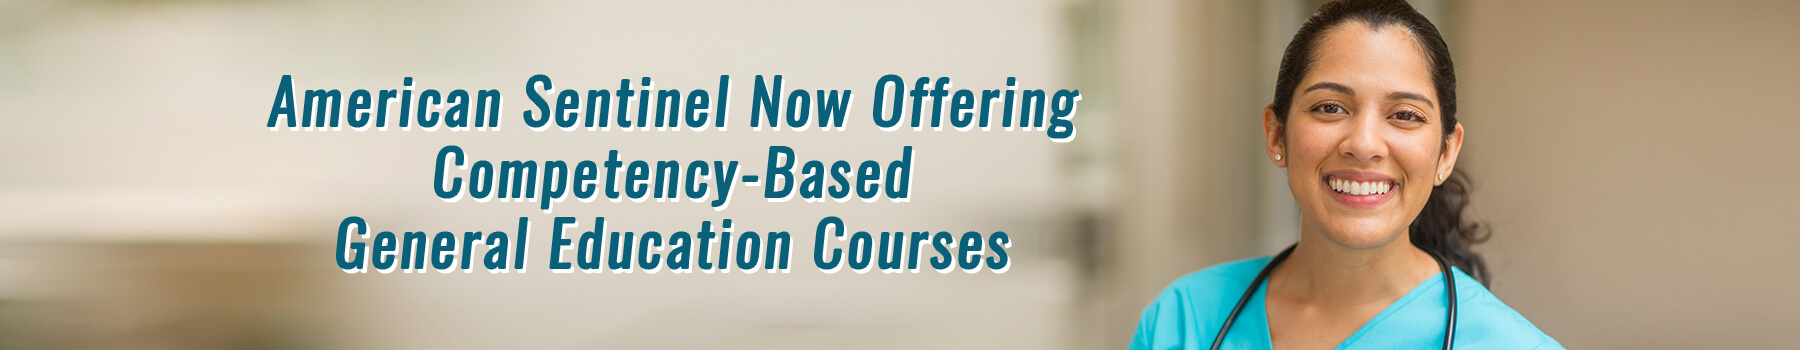 American Sentinel Now Offering Competency Based General Education Courses